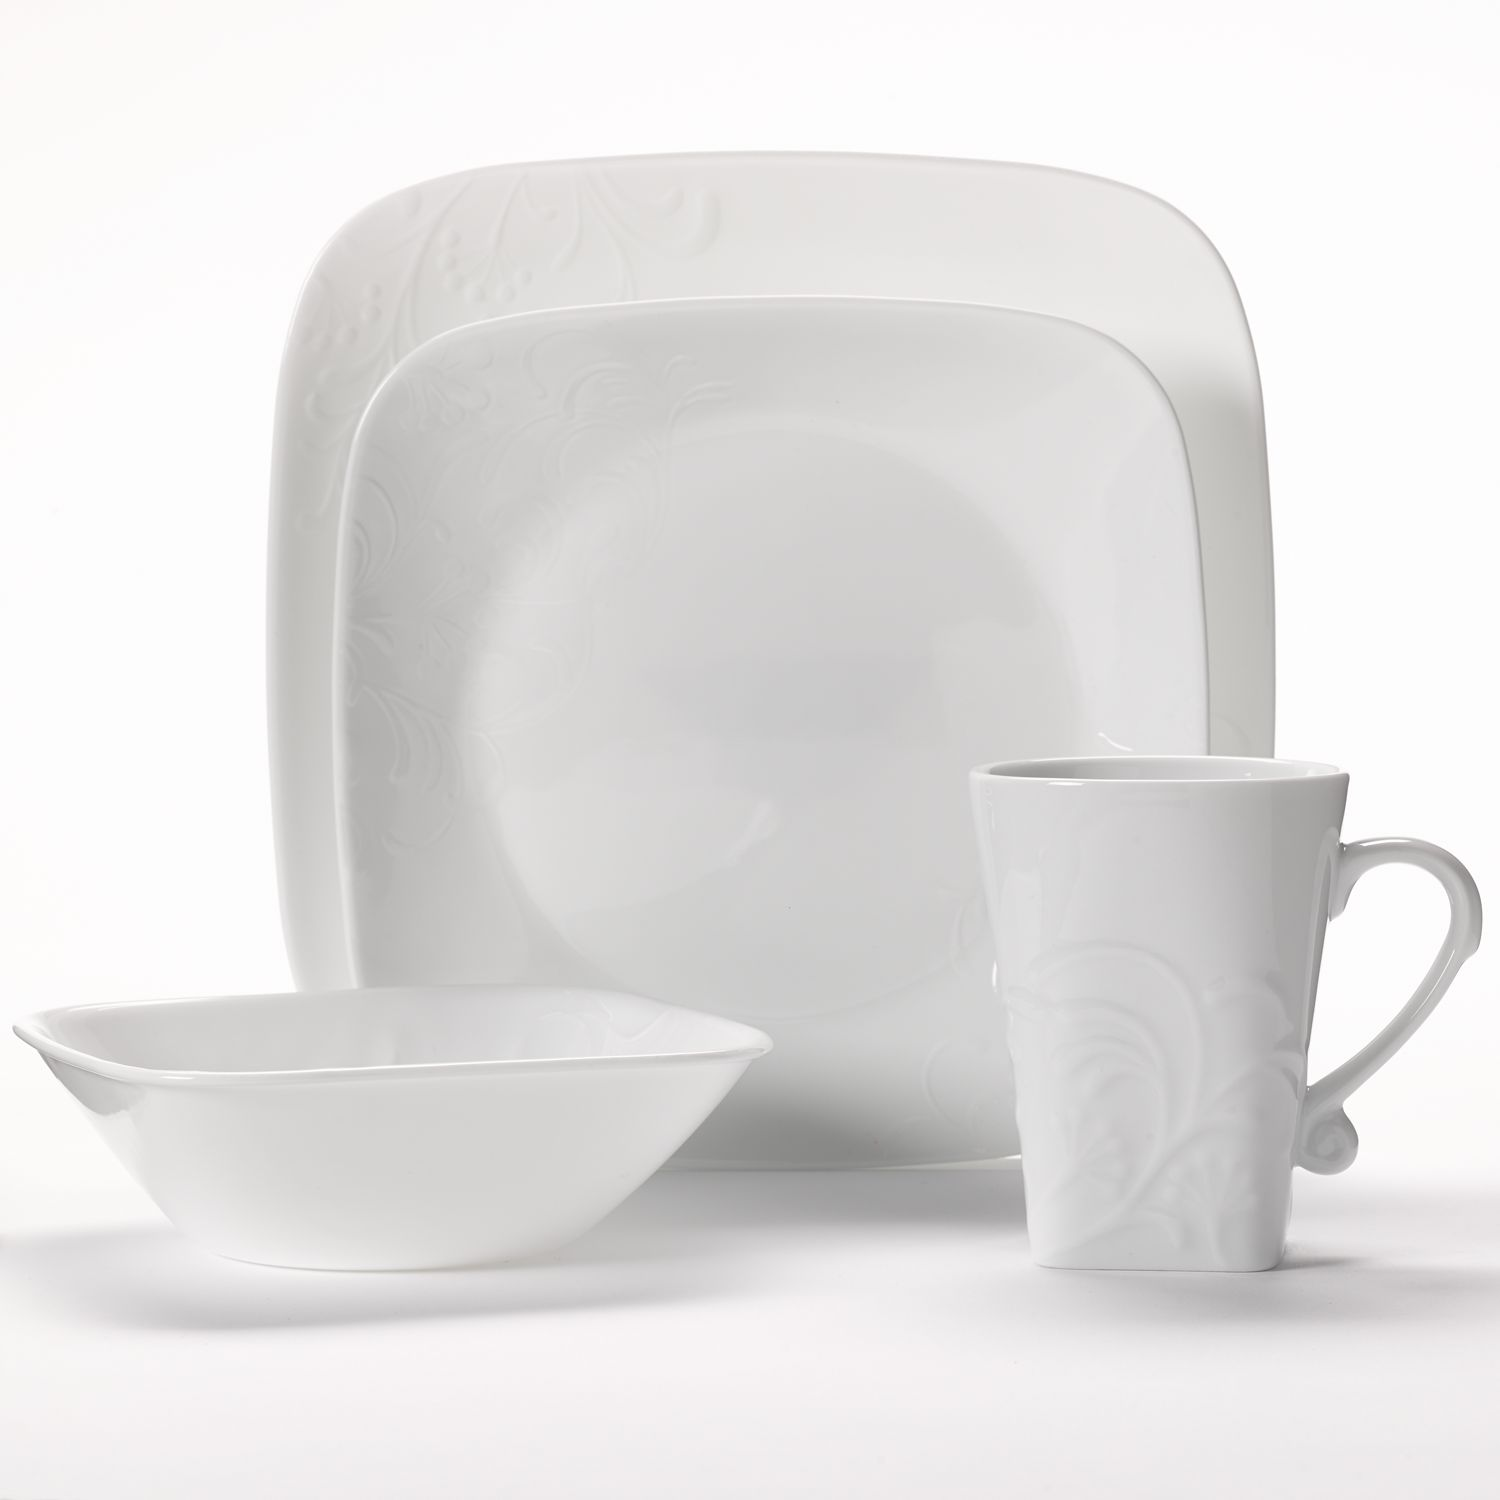 Corelle Cherish 16-pc. Dinnerware Set  sc 1 st  Kohl\u0027s : corelle 16 pc dinnerware set - pezcame.com